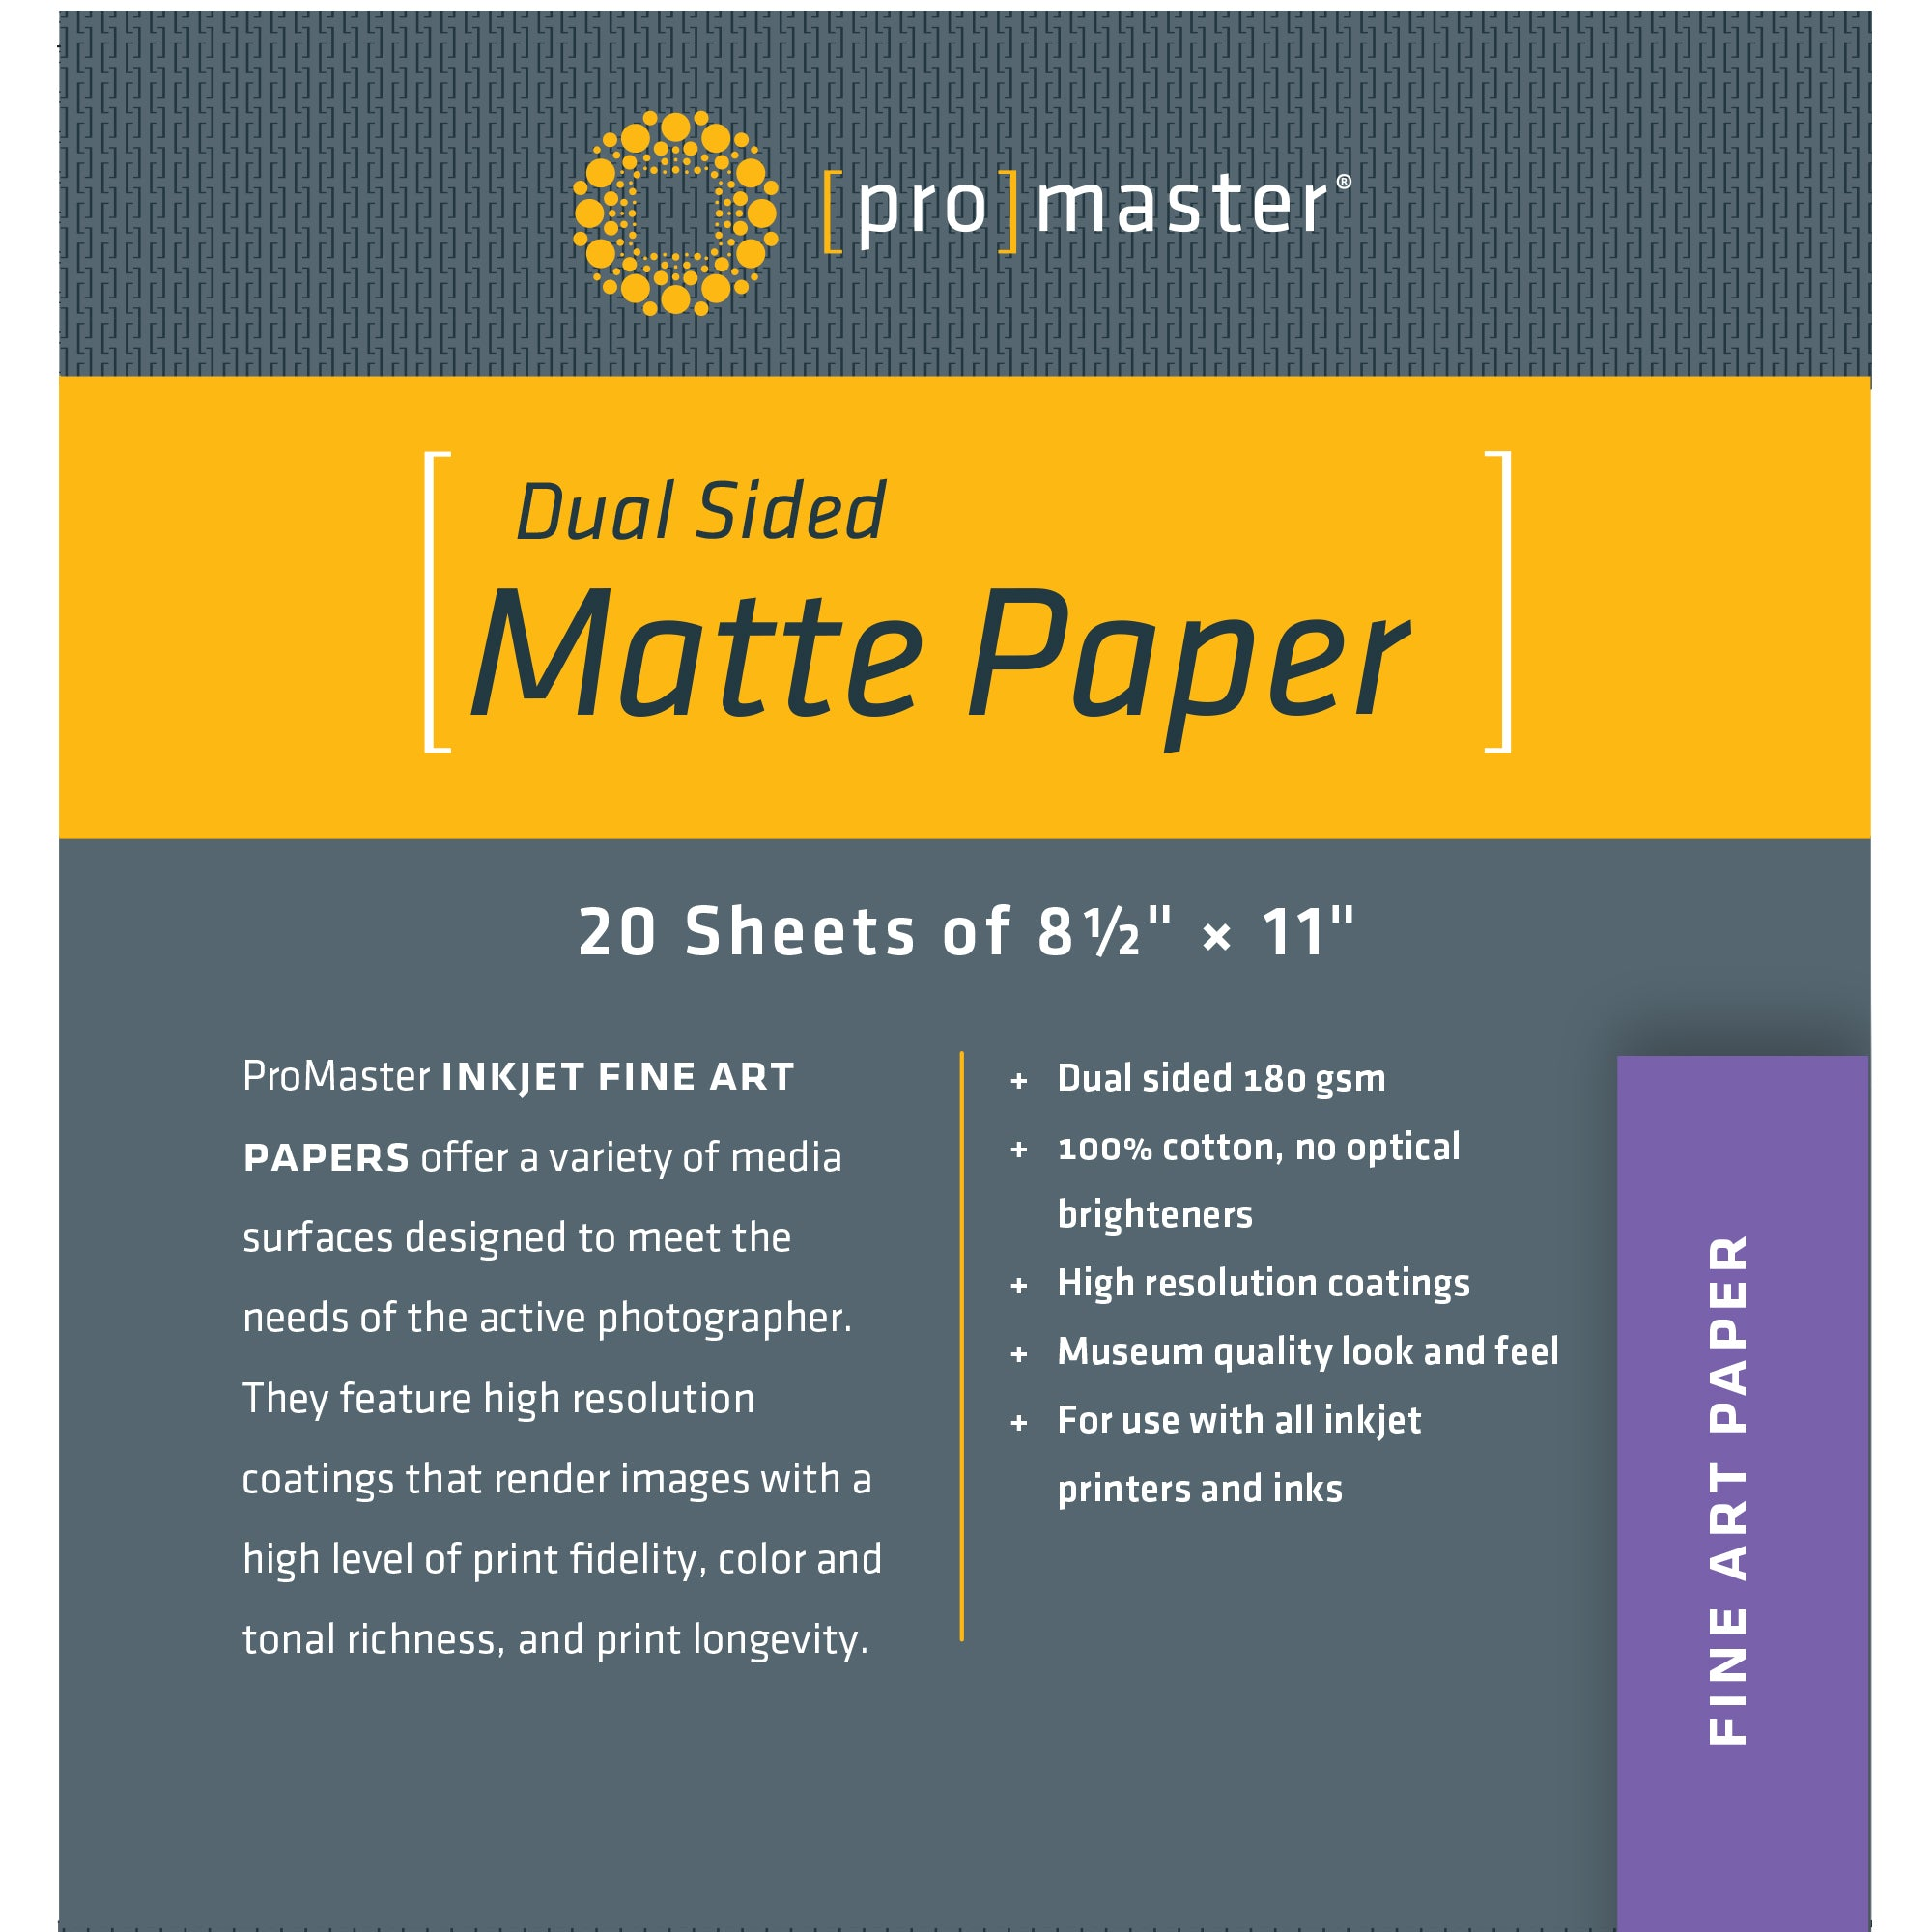 "ProMaster Dual Sided Matte Paper - 8 1/2""x11"" - 20 Sheets - Print-Scan-Present - ProMaster - Helix Camera"